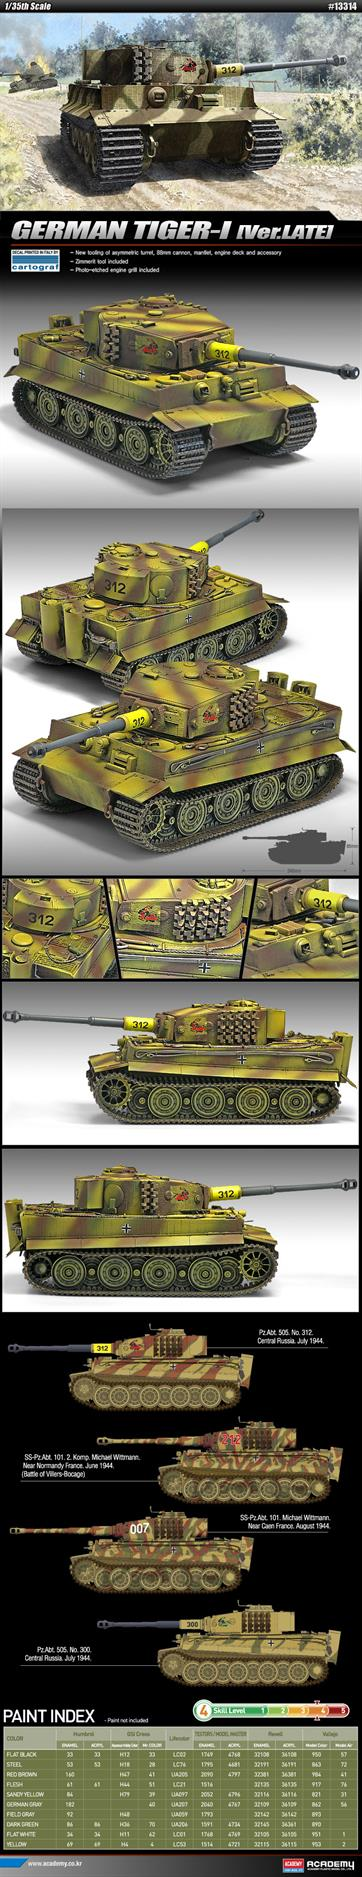 Academy 1/35th German Tiger -1 Late Version Tank Kit 13314Glue and paints are required to assemble and complete the model (not included)